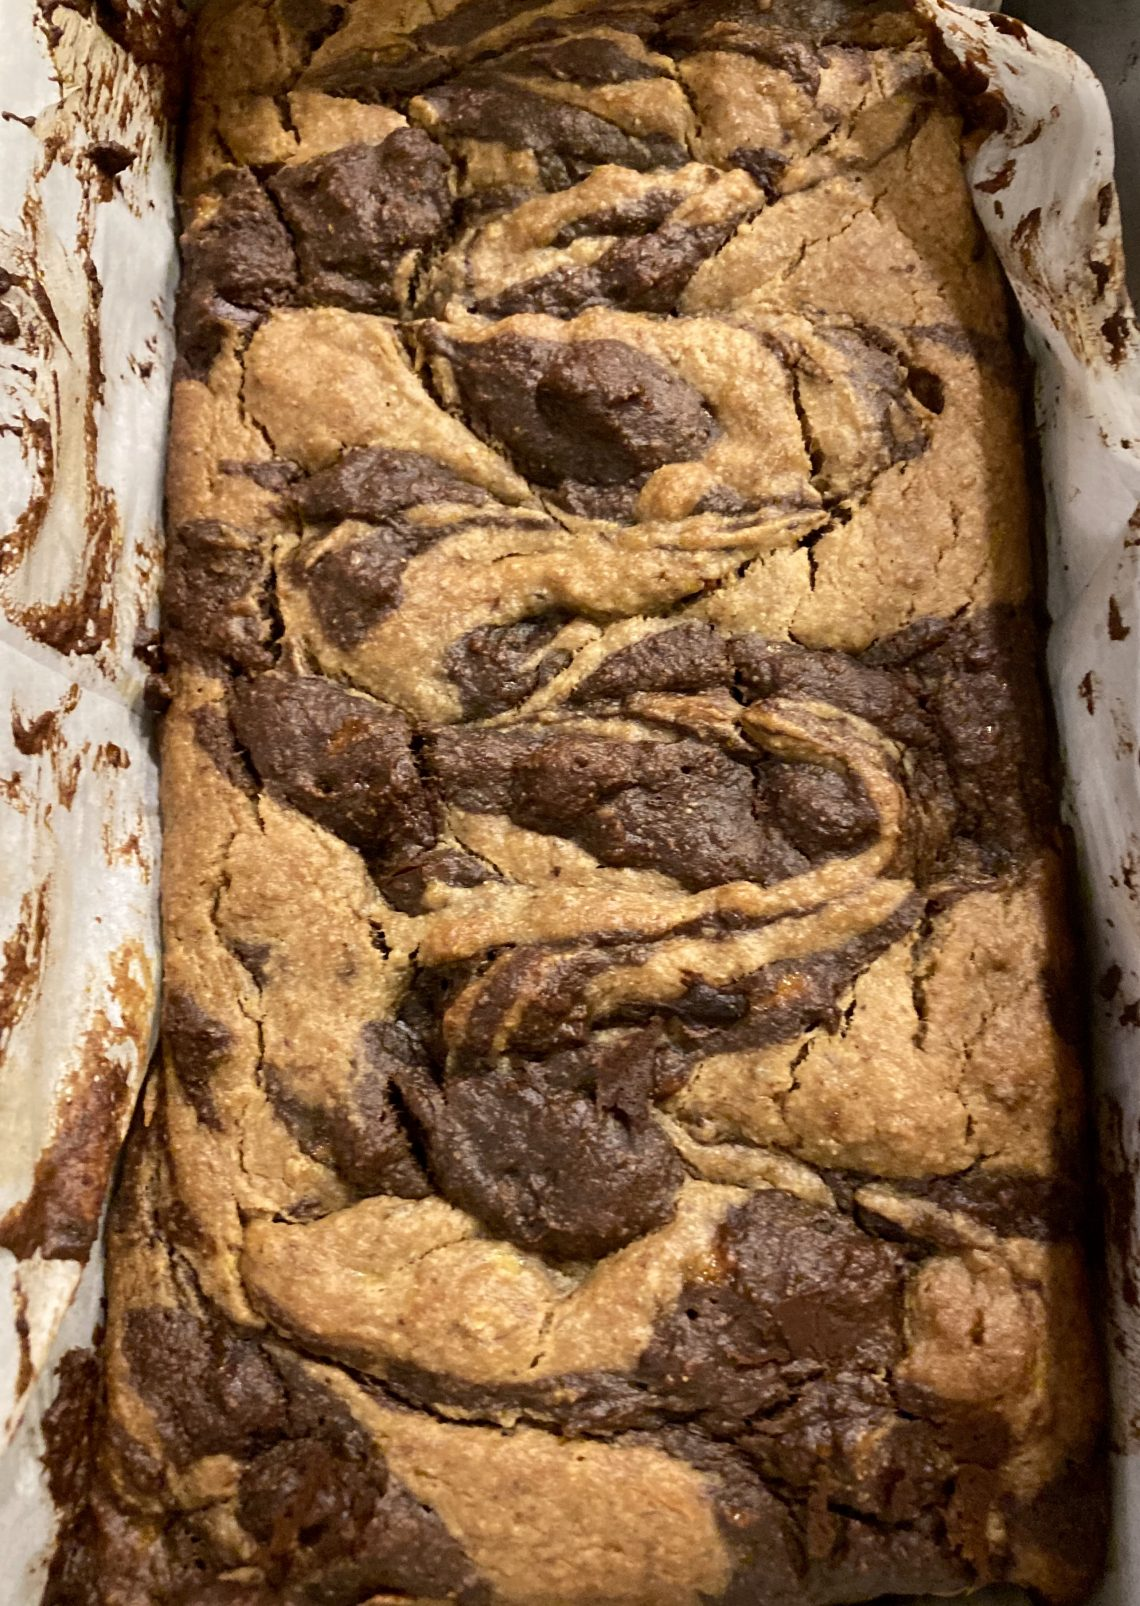 marbled peanut butter chocolate banana bread loaf